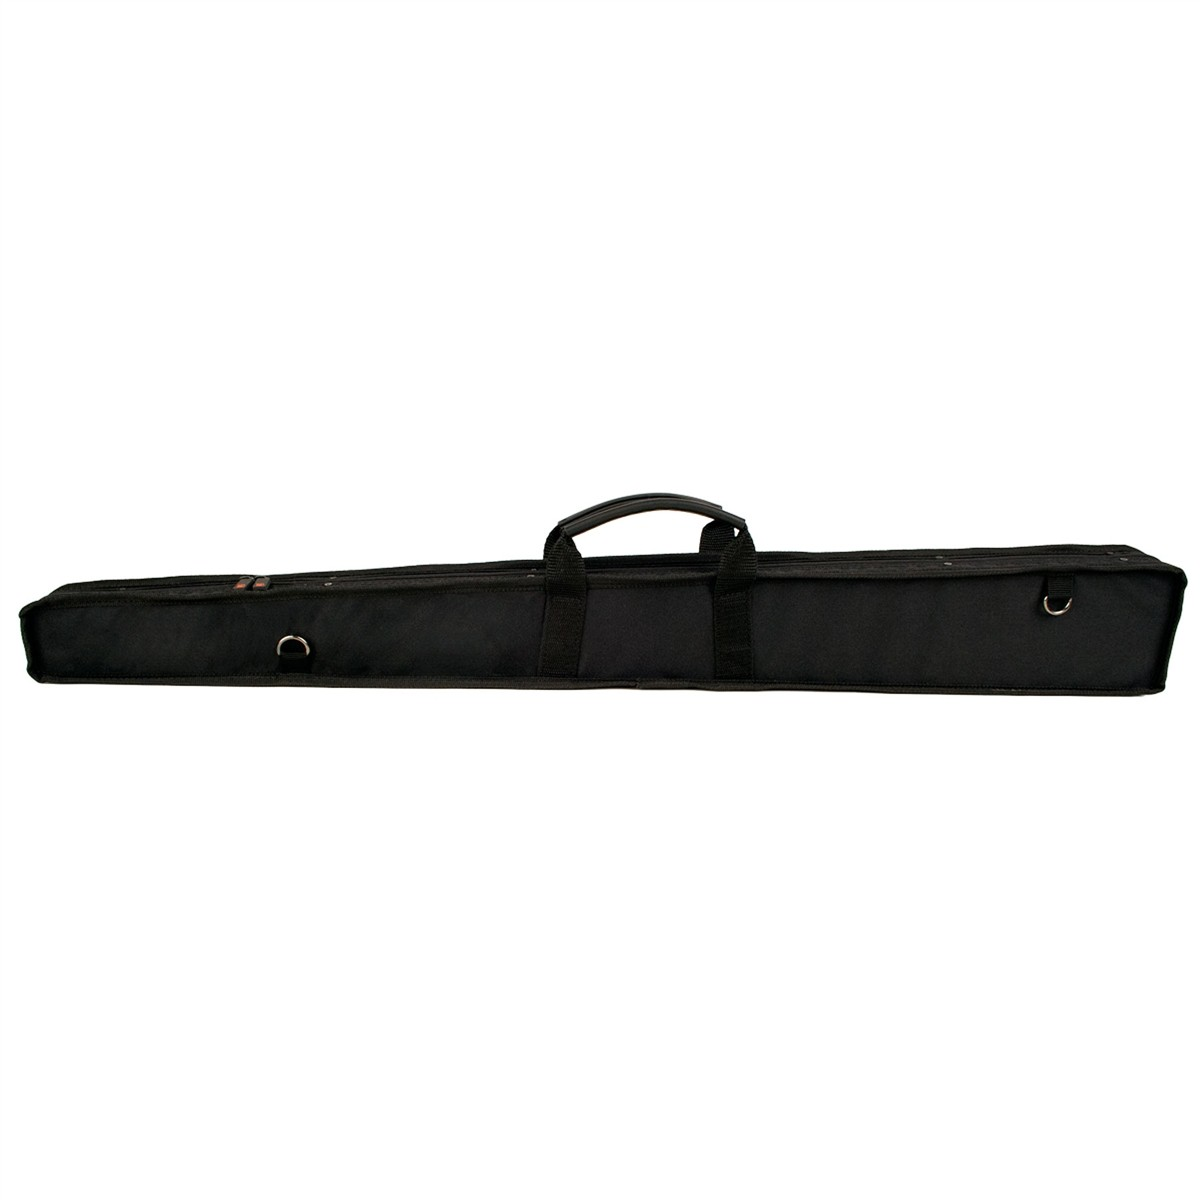 Protec Upright Bass Bow Case (A228)